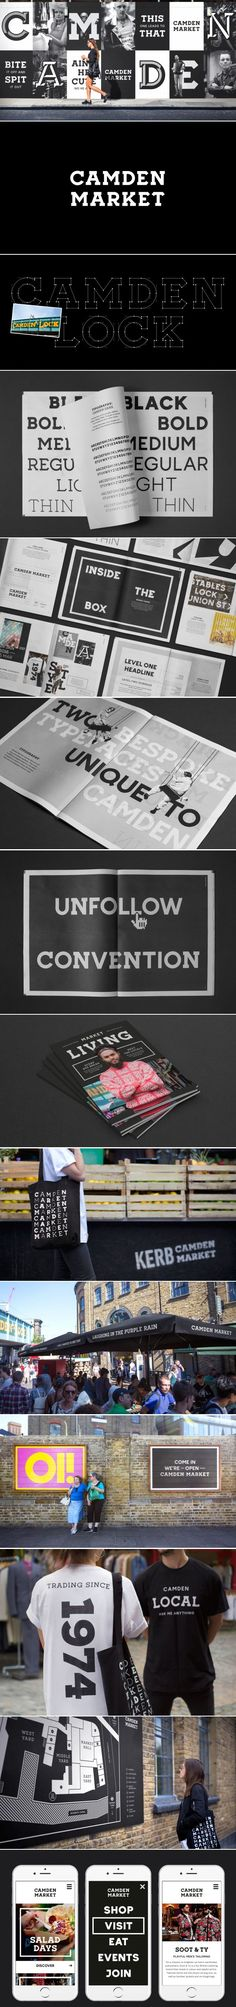 Presentation Design Inspiration, Simple layout for PowerPoint